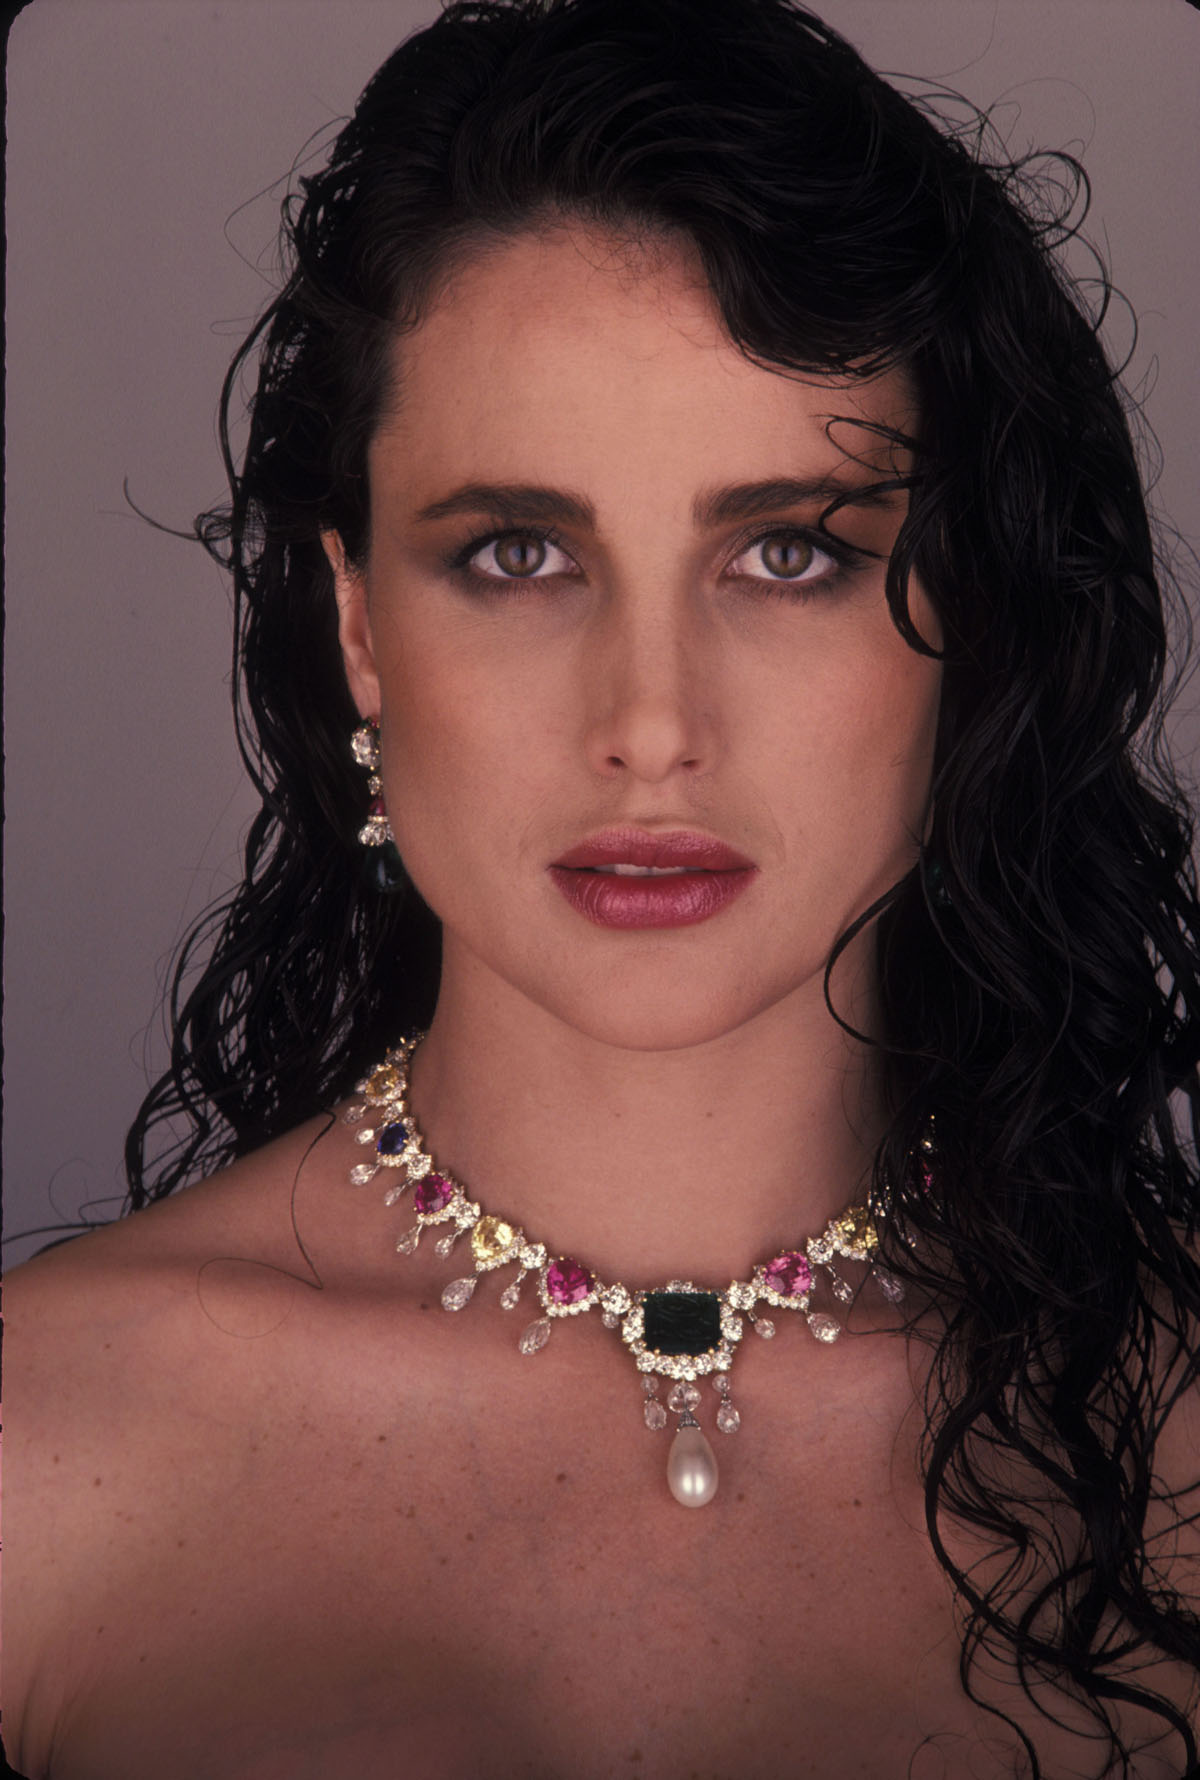 Andie macdowell who is she dating 10